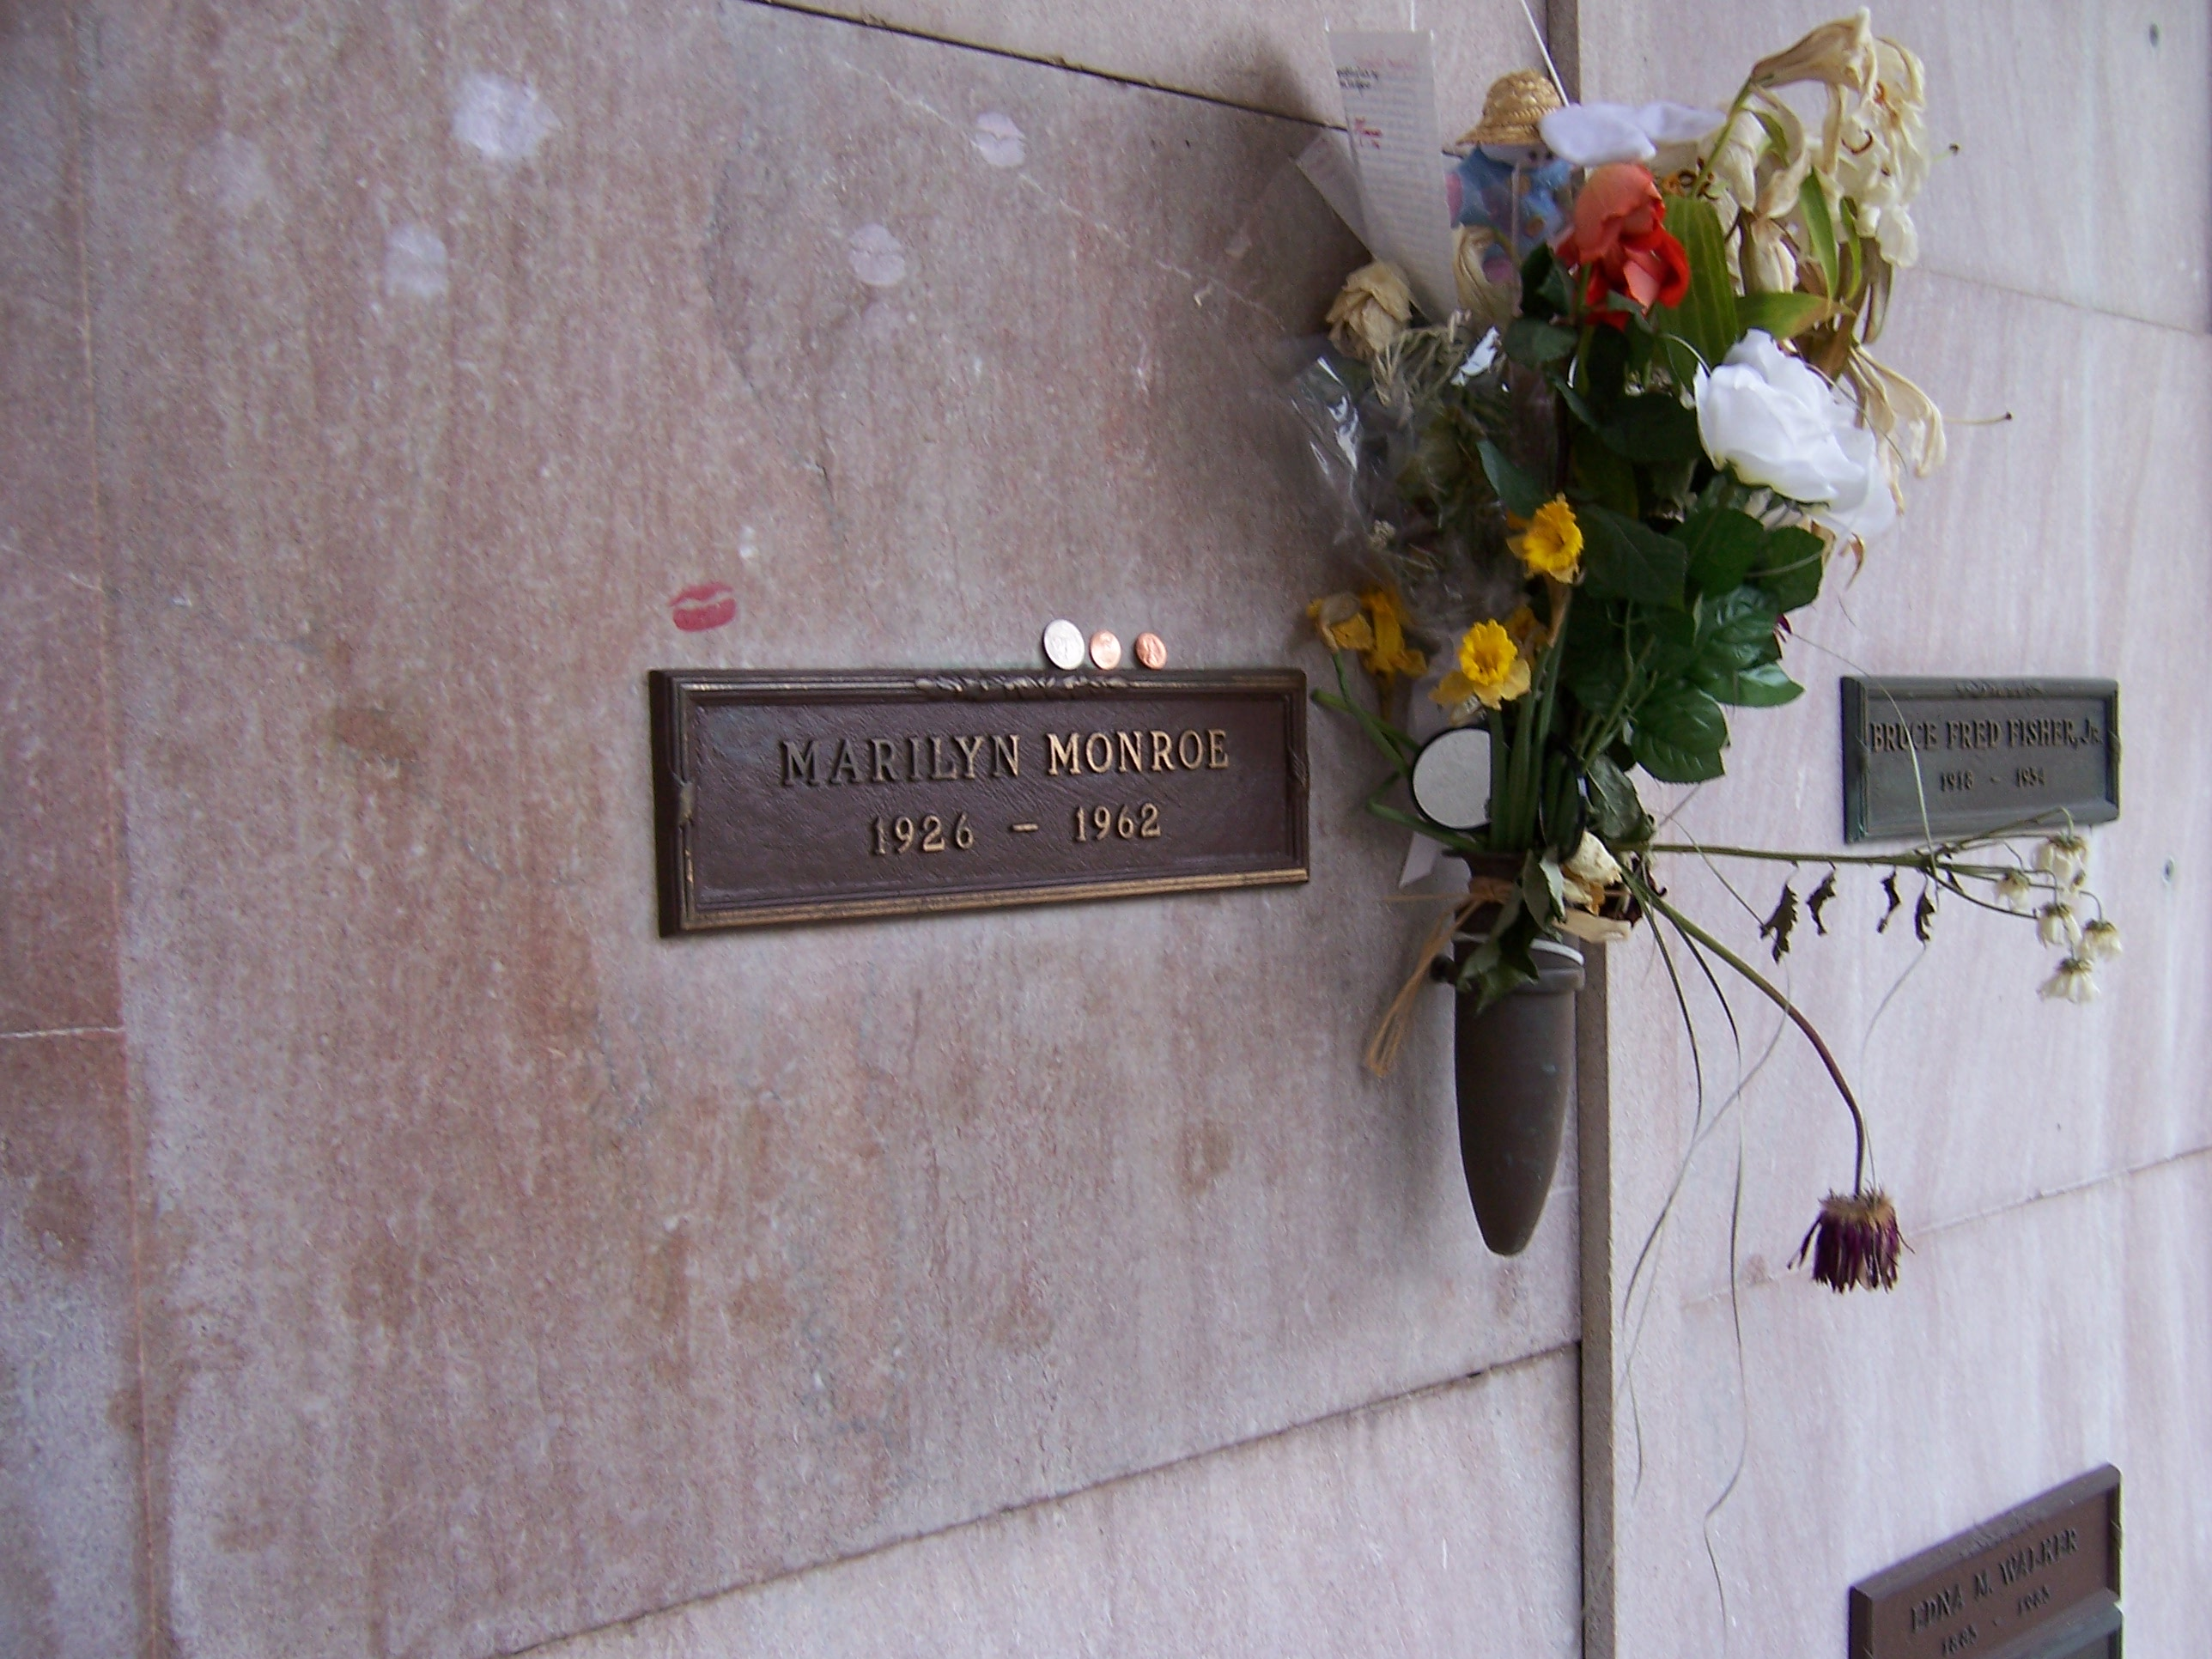 Crime Scene Photos Of Marilyn Monroe Marilyn monroe's crypt at the